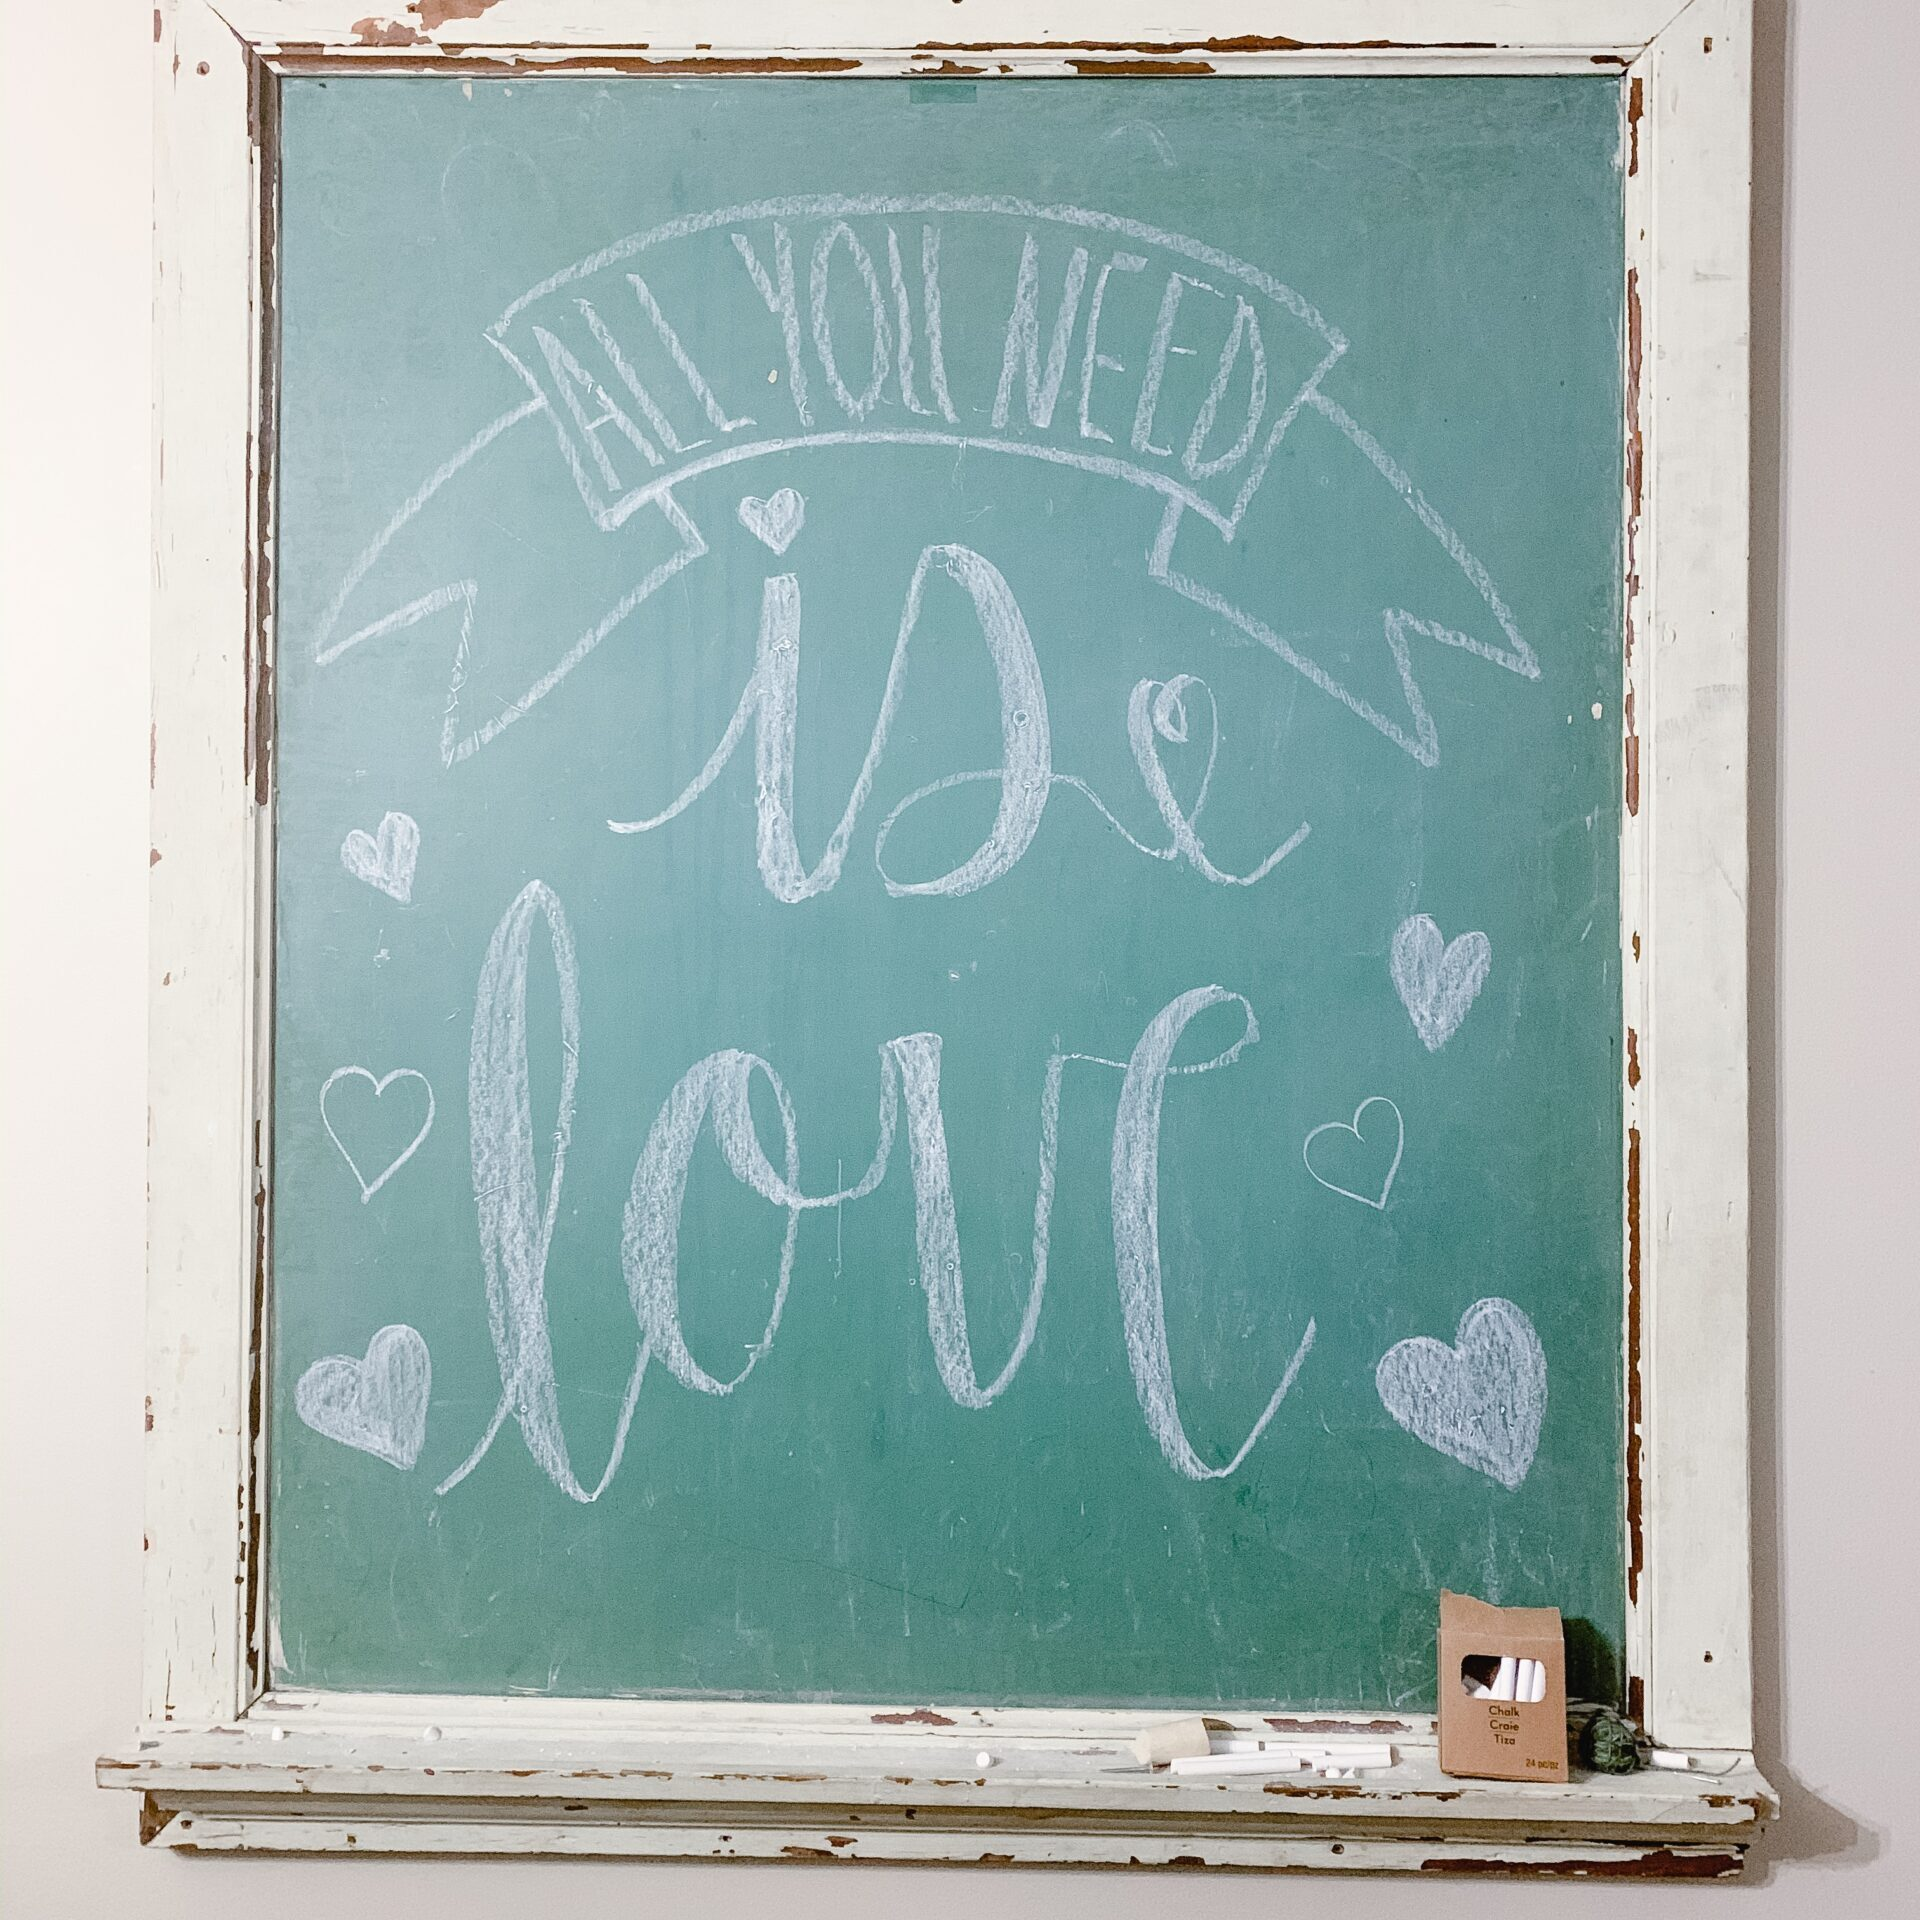 Antique chalkboard with All you need is love hand lettered